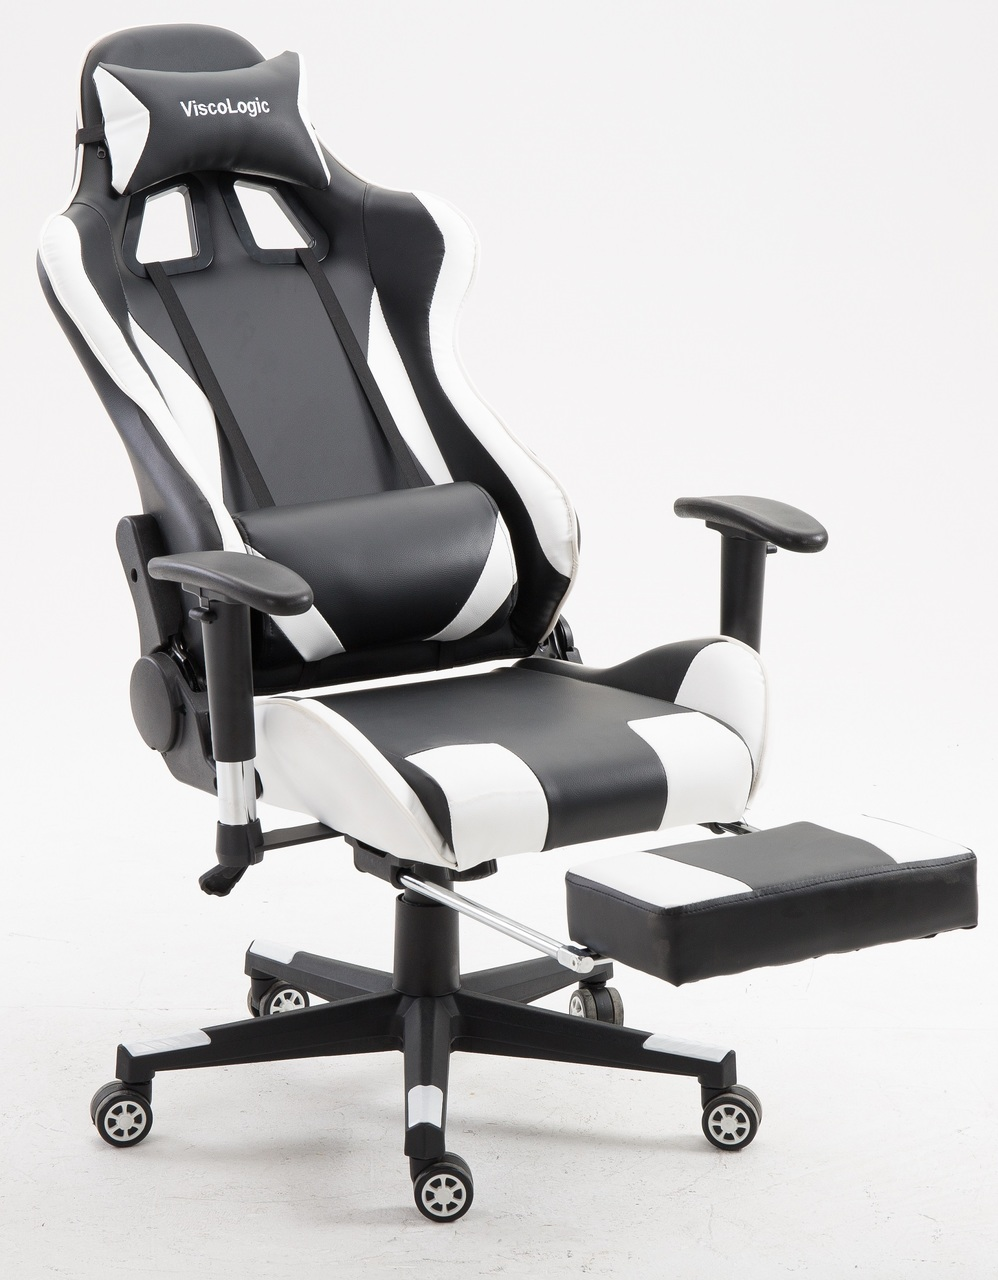 Computer Chair Ergonomically Correct Viscologic Speedx Ergonomic Gaming Chair For Pc Video Game Computer Chair Racing Chairs With Footrest